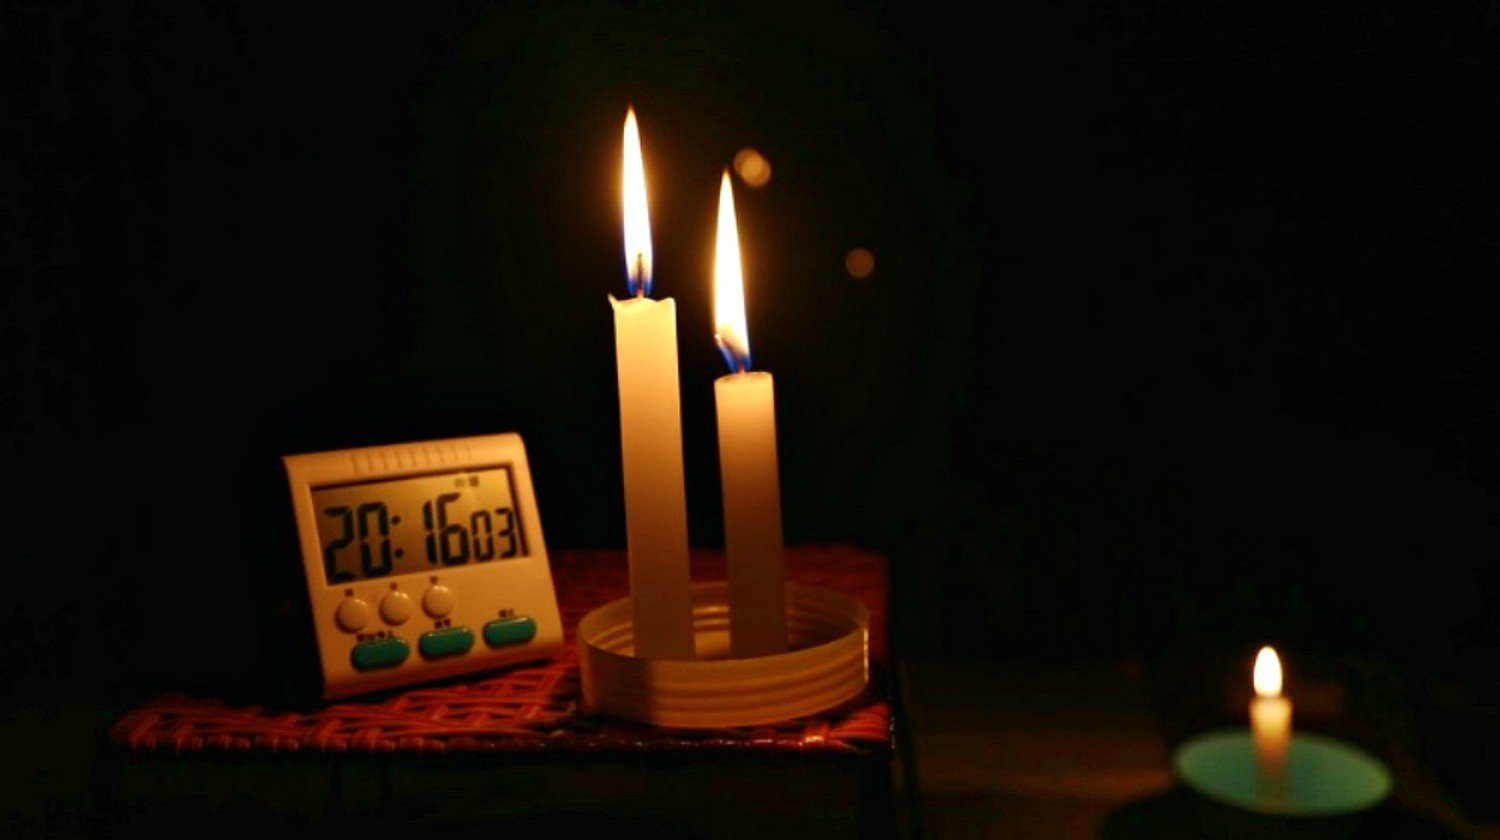 Feature | Burning Candle beside clock in the table | Power Outage: What To Do When The Power Goes Out